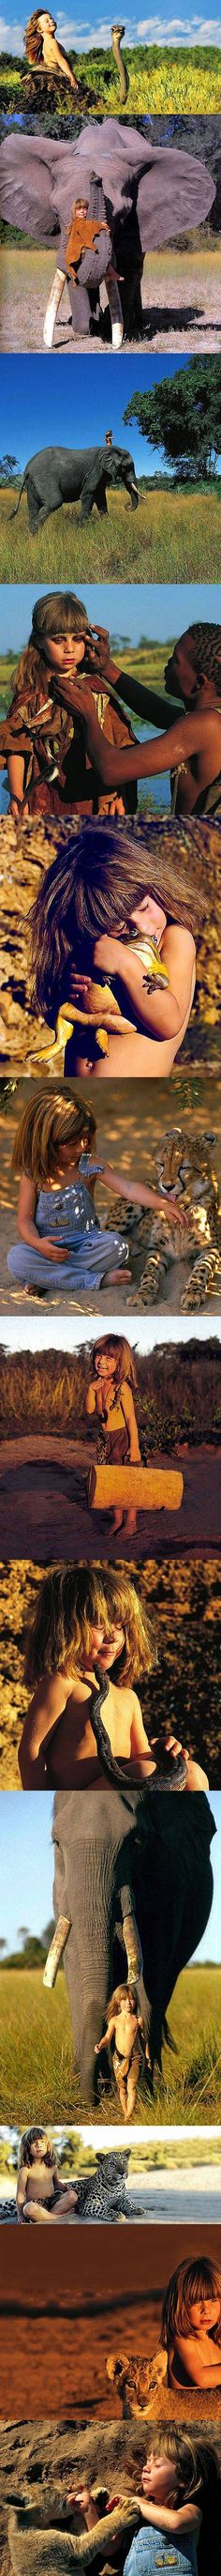 Riding a five-ton elephant, whom she called 'my brother', chilling with a cheetah or hugging a giant bullfrog as if it were a Teddy bear. The childhood of a French girl Tippi Degre sounds more like a newer version of Mowgli, rather than something real. A white child, she was born in Namibia to French wildlife photographer parents, and grew up in Africa. Tippi spent her whole childhood playing with wild animals including lion cubs, a mongoose, a snake, a cheetah, baby zebra, giraffes and…